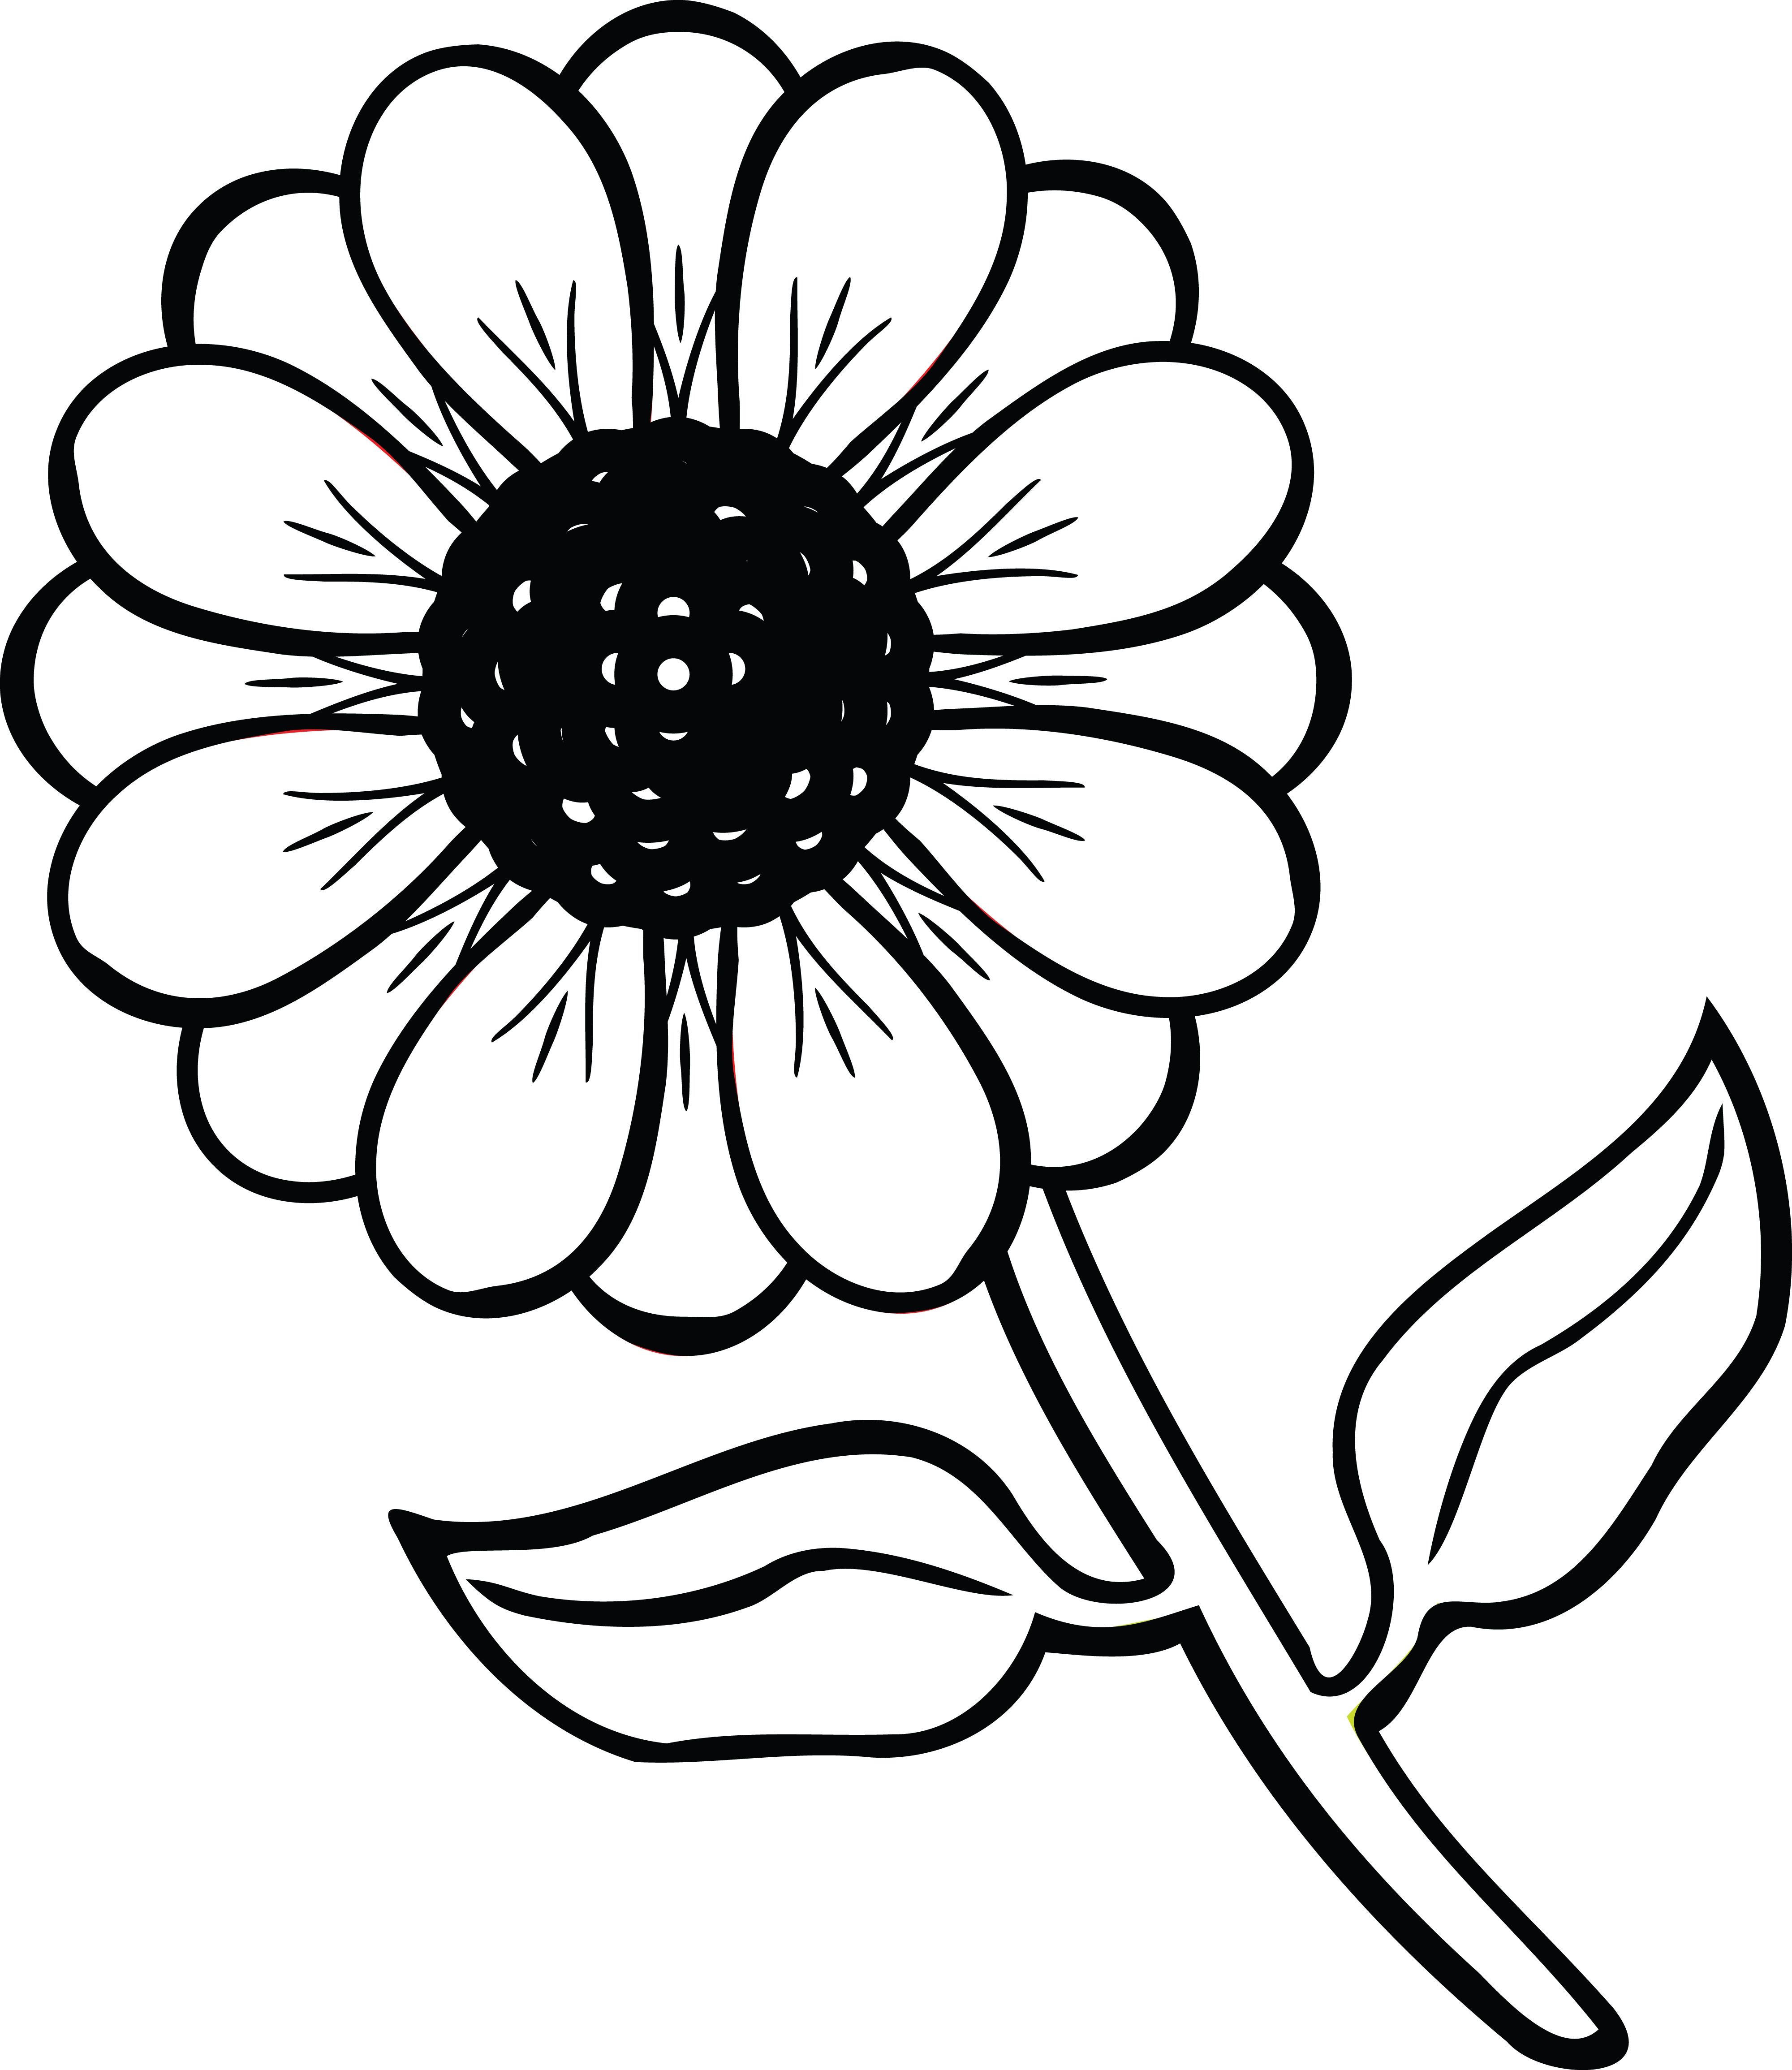 daisy flower cartoon pictures image result for daisy botanical drawing daisy drawing flower daisy cartoon pictures